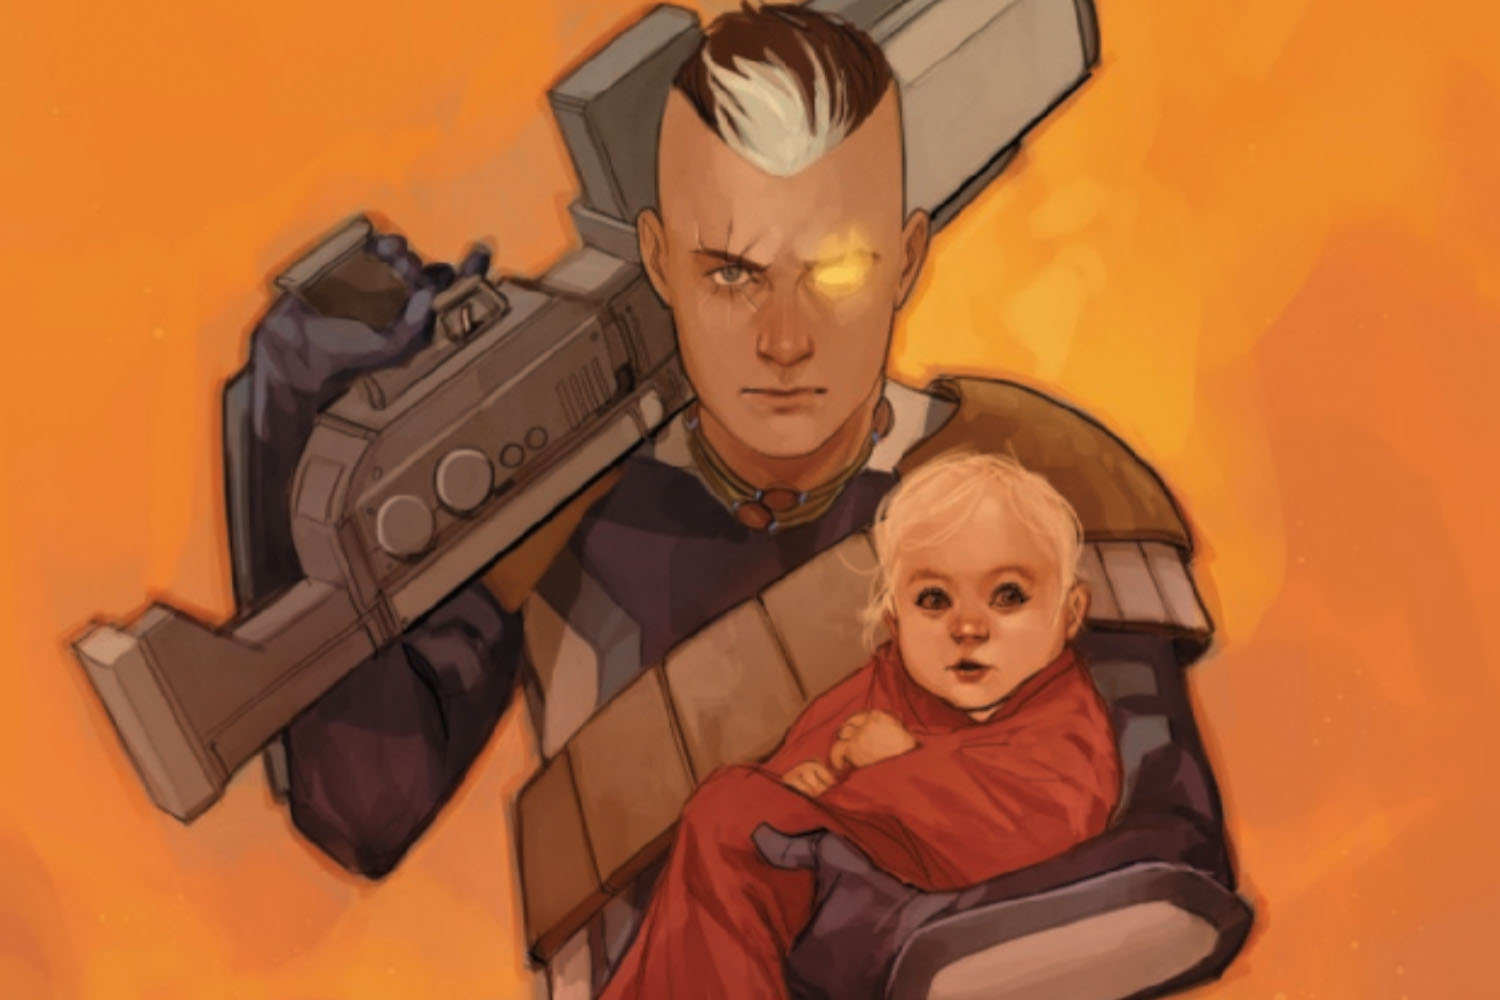 'Cable' #7 review